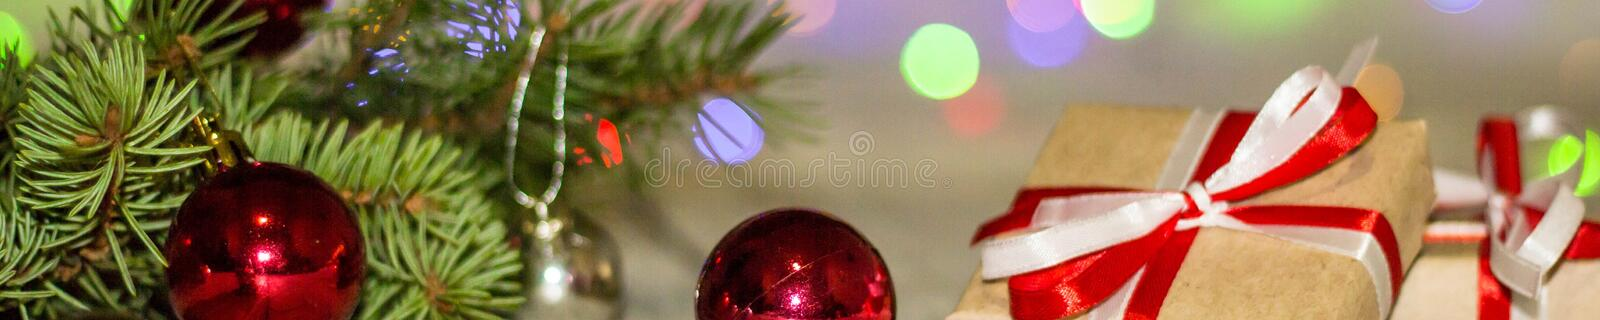 Banner of Gift boxes and colorful decorated Christmas tree on bokeh background with copy space stock photos